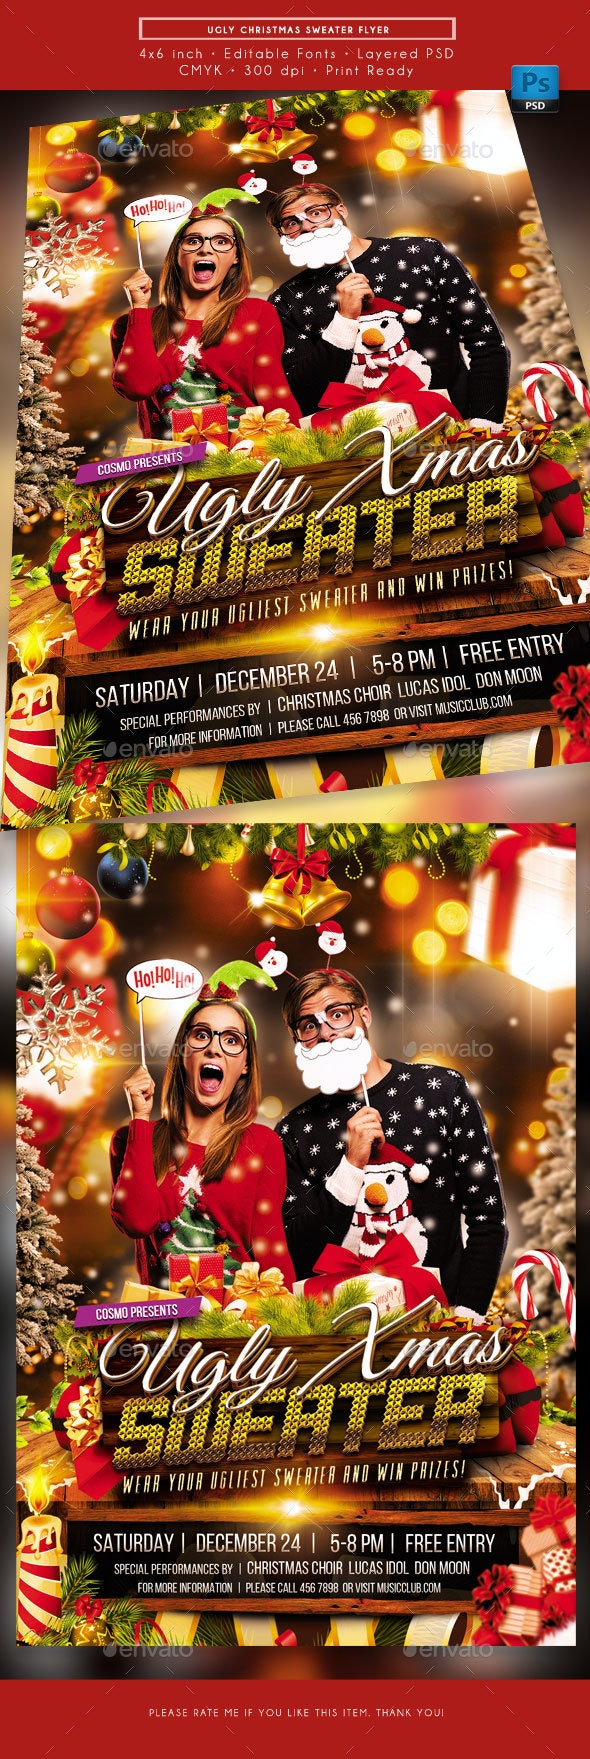 Ugly Christmas Sweater Event Flyer - Holidays Events